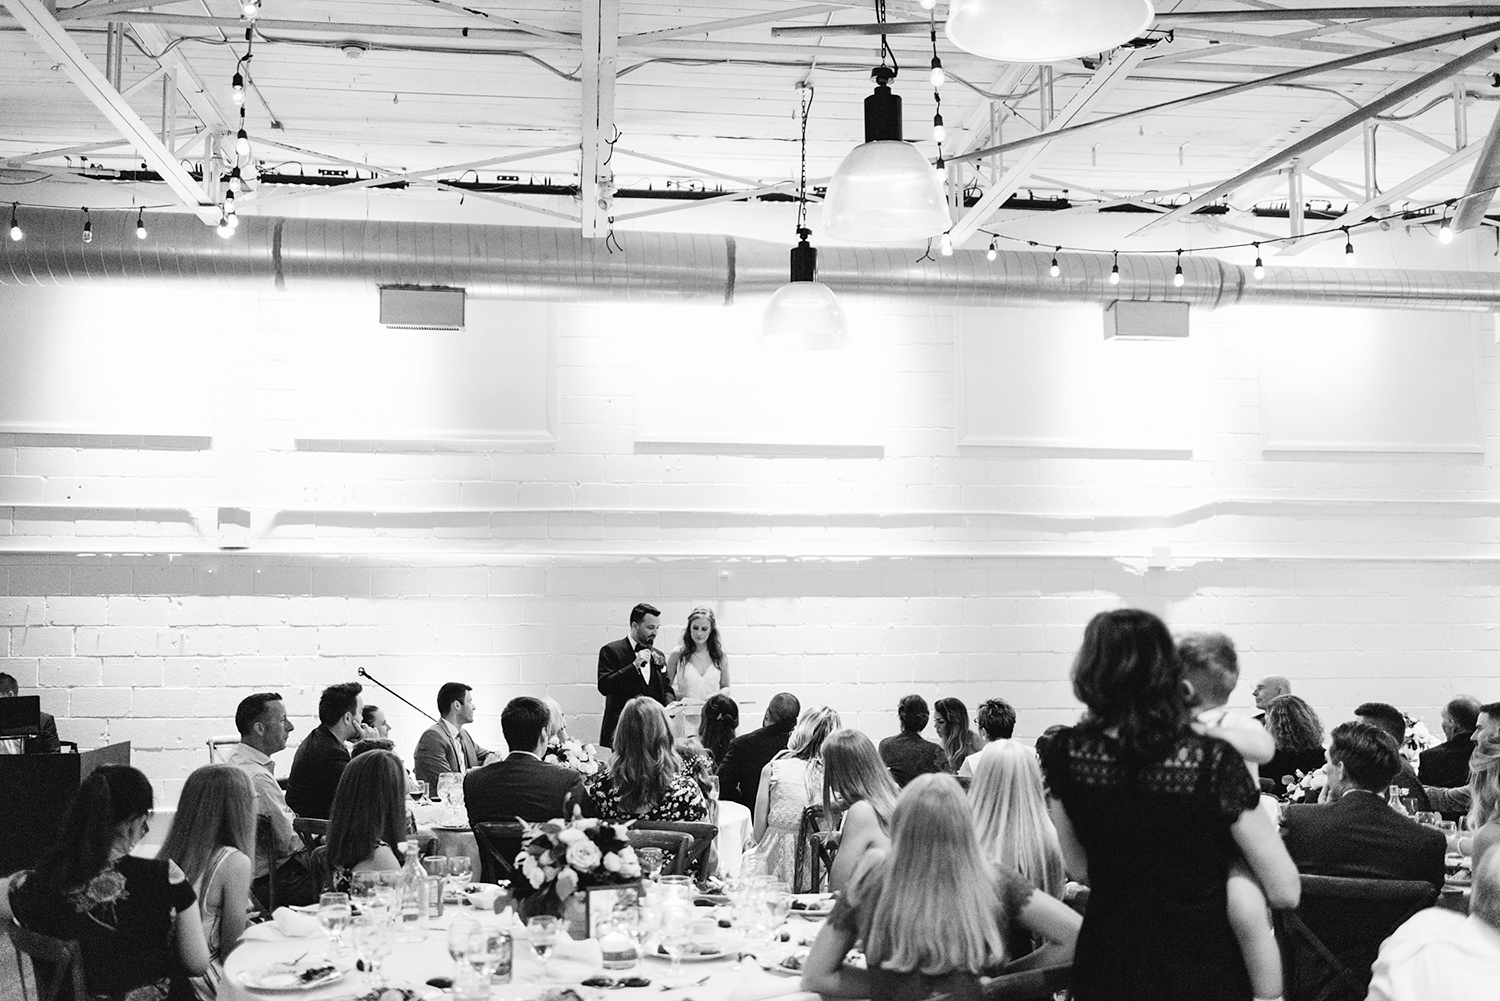 torontos-best-wedding-photographers-ryanne-hollies-photography-photojournalism-artistic-moody-toronto-airship37-graffiti-editorial-reception-bride-and-groom-speech-cheers-grooms-speech-to-wife-honest-emotional-sincere-whole-room.jpg